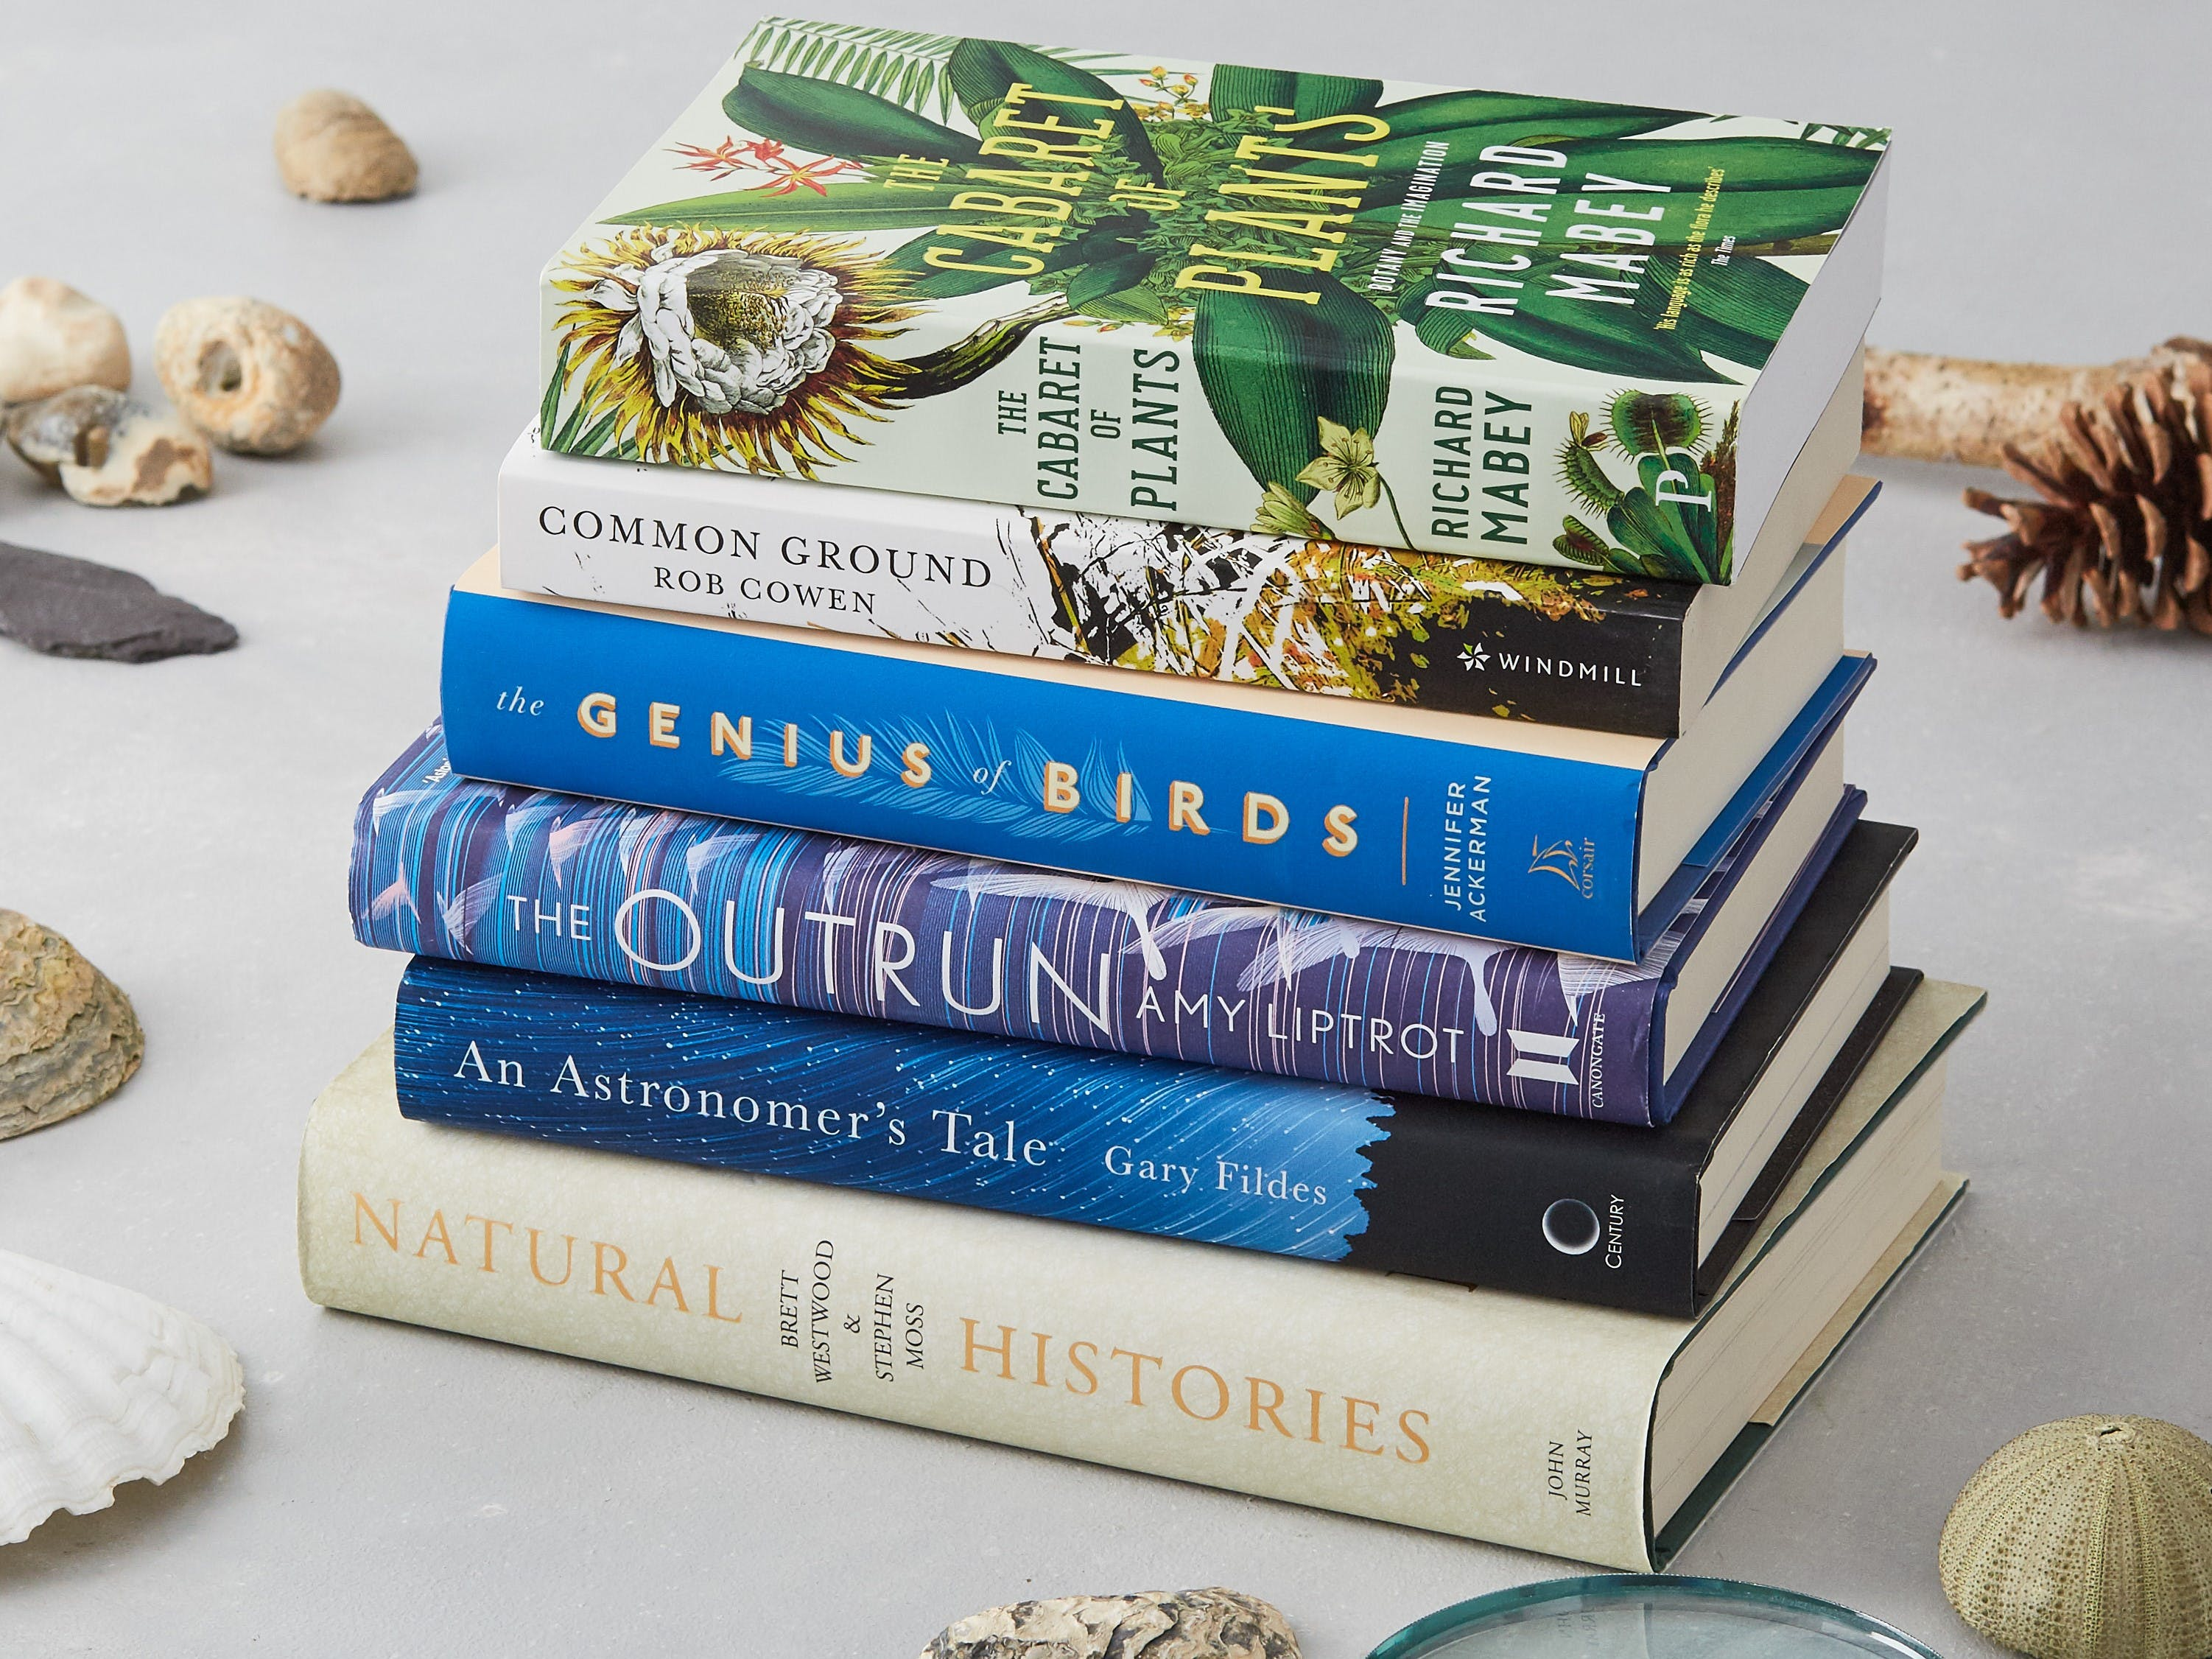 The Willoughby Natural History Book Club